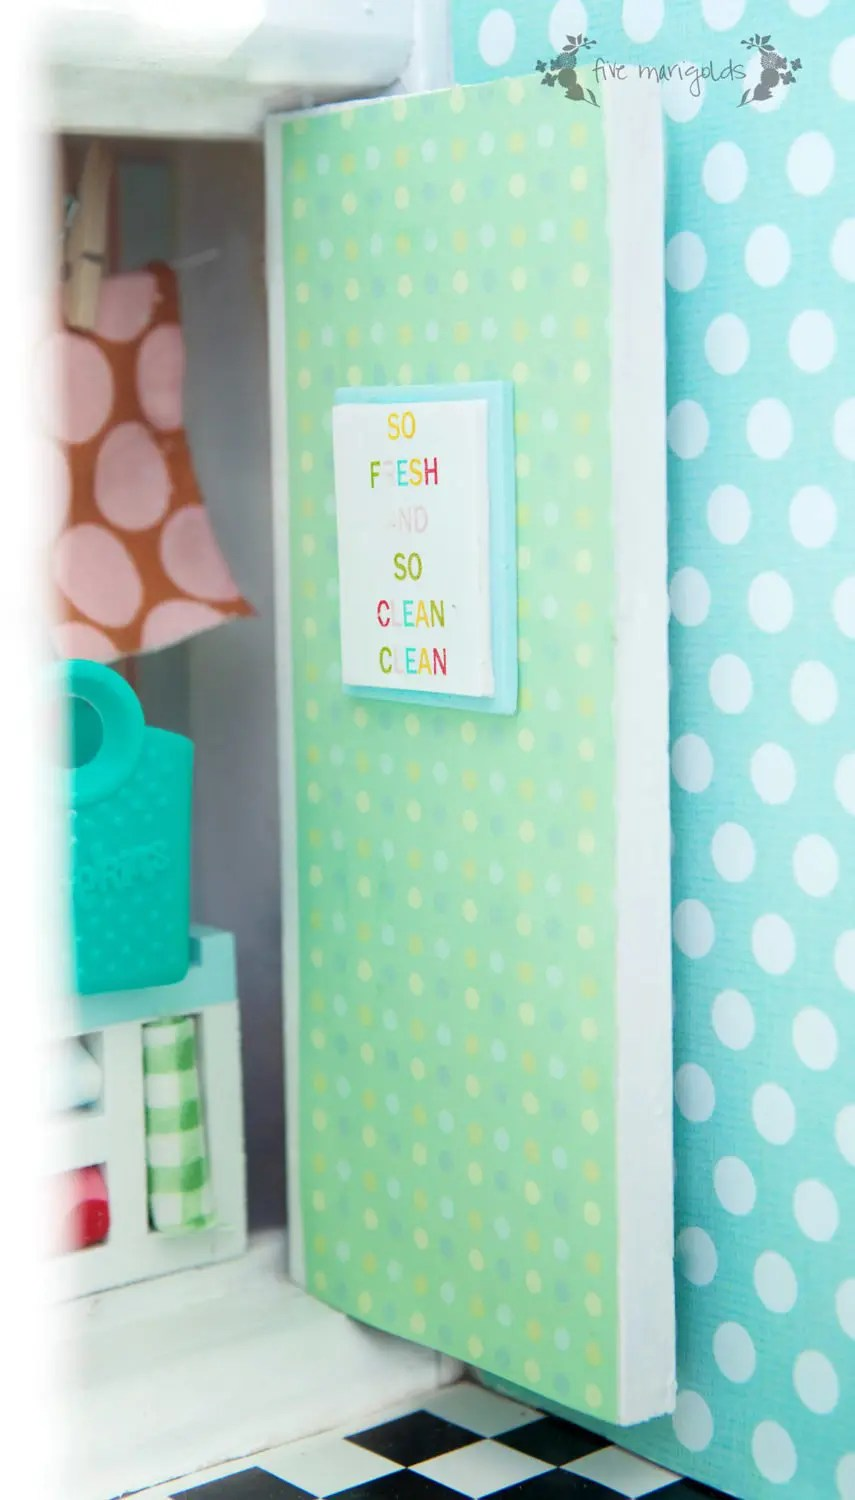 Vintage Dollhouse Remodel: Bathroom and Laundry Room | www.fivemarigolds.com